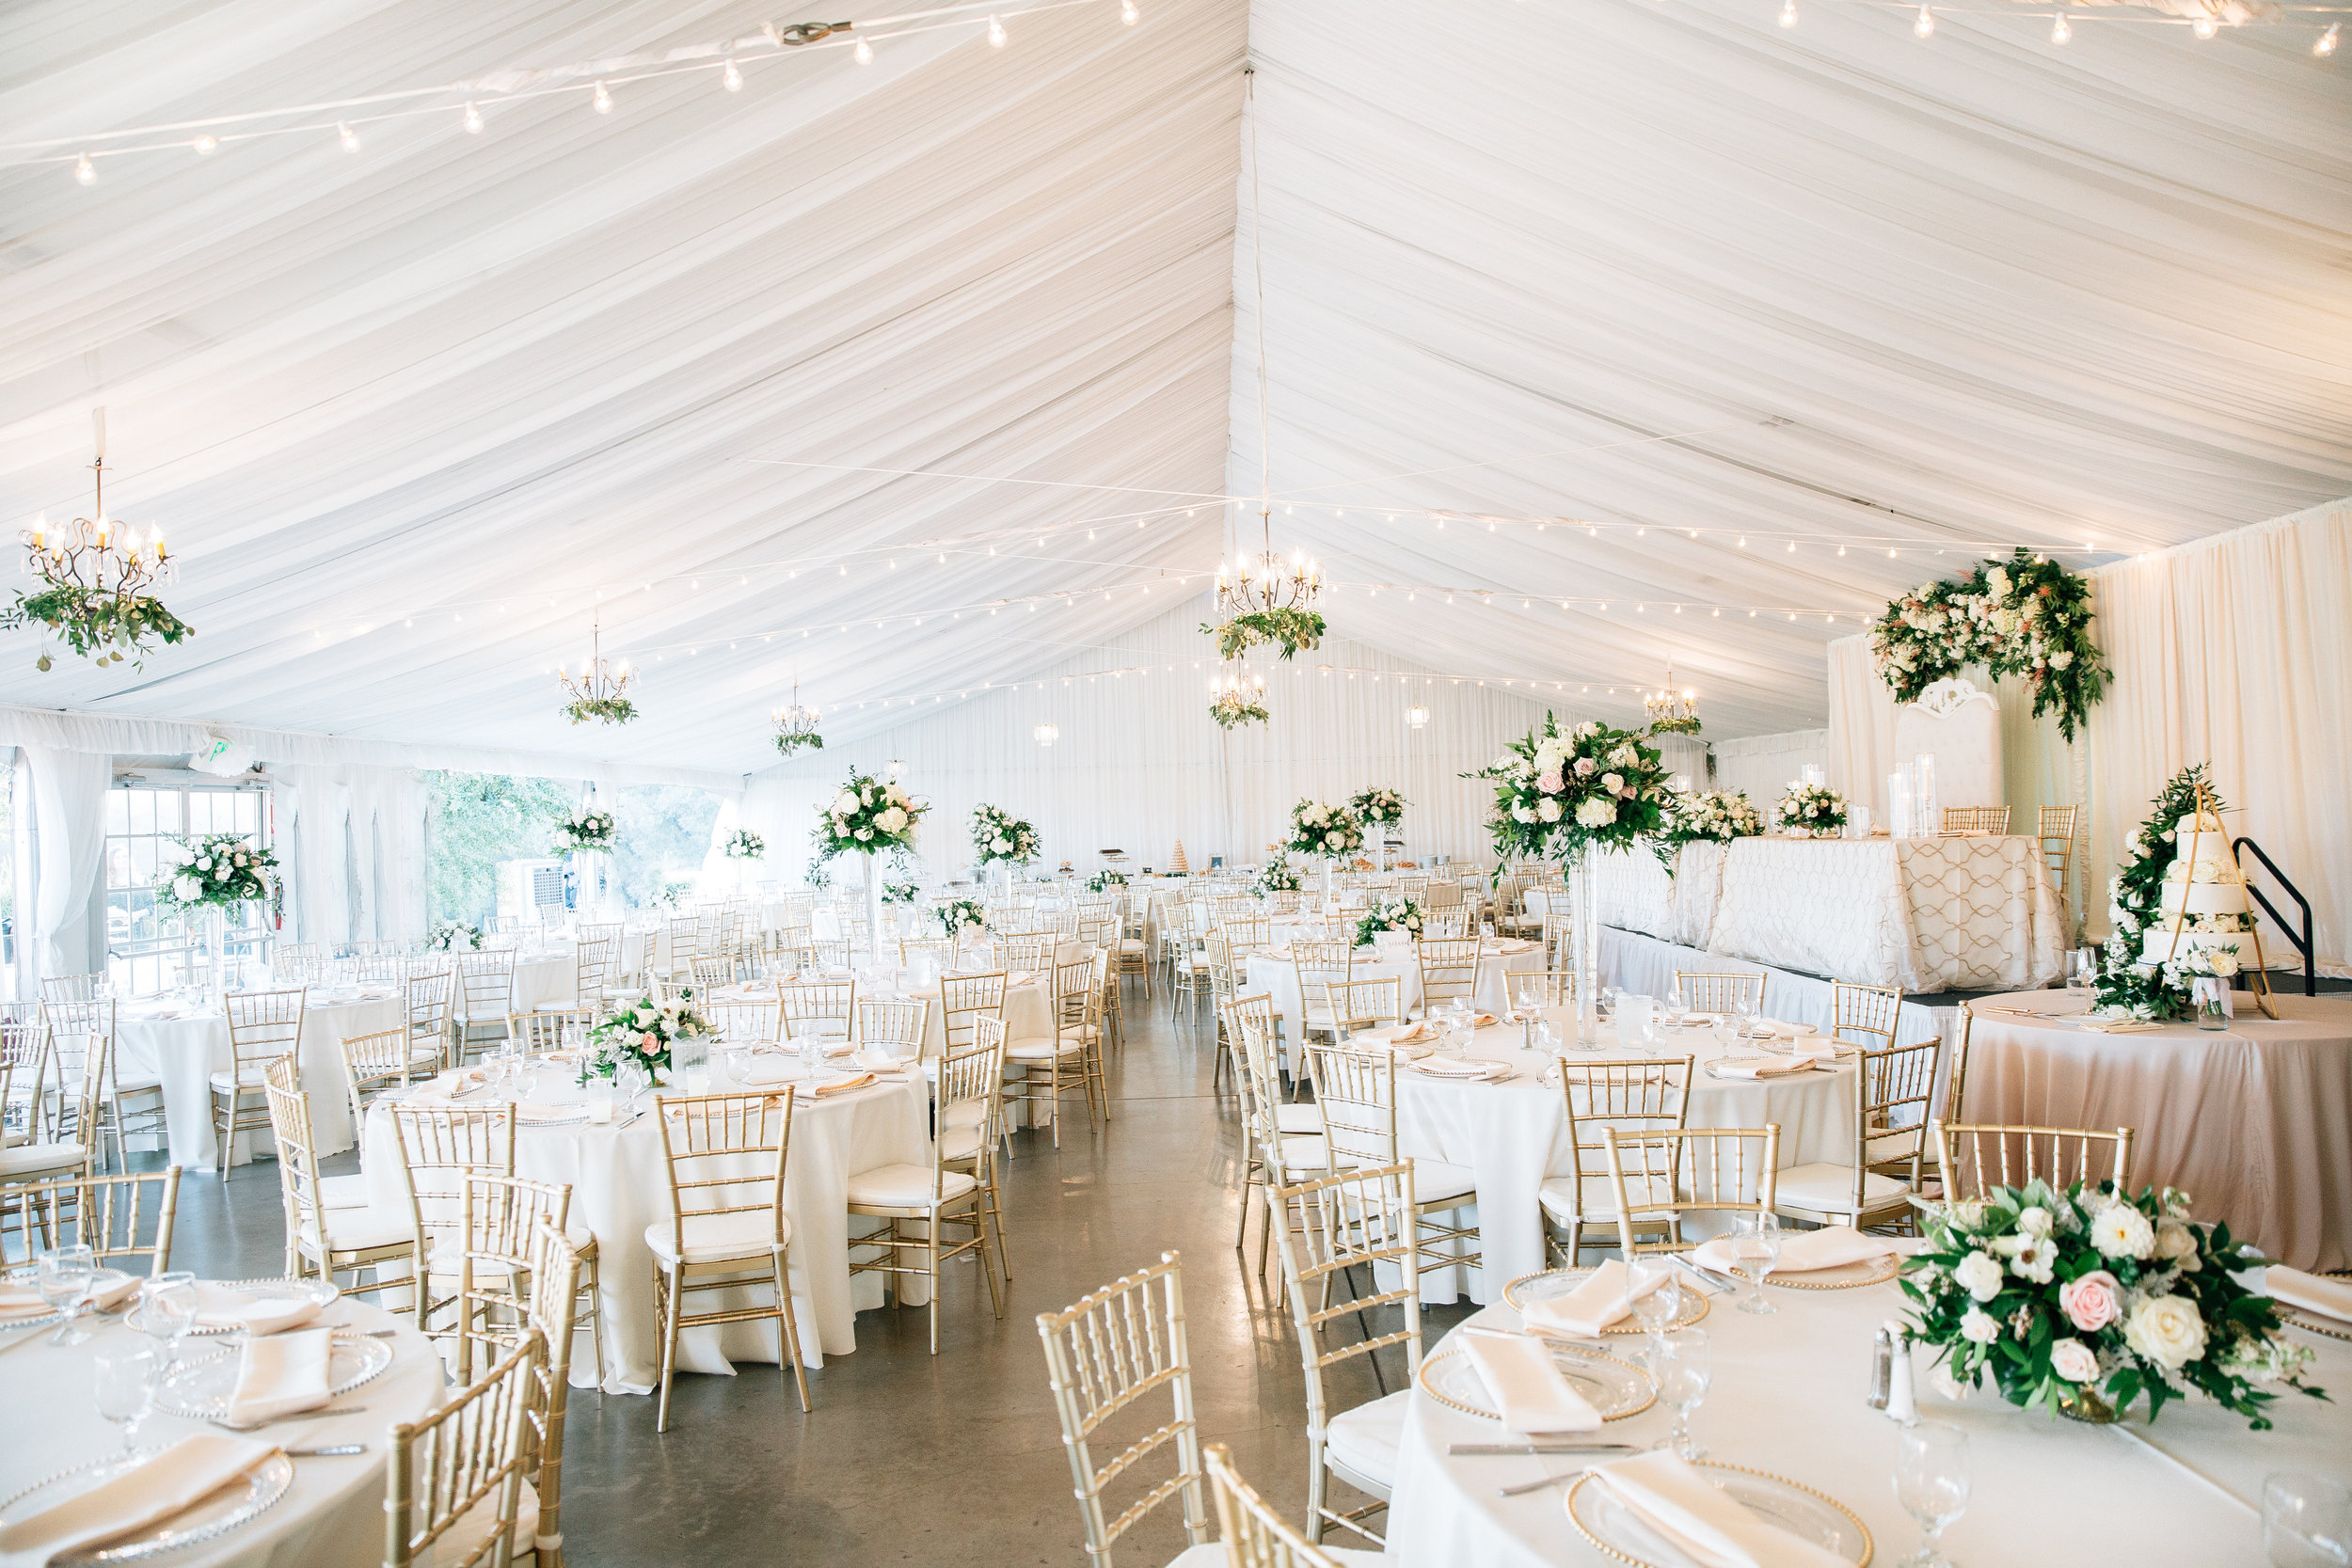 side_view_reception_flowers_white_blush_greenery_tall_short_arrangements_white_tent_violette_fleurs_anna_perevertaylo.jpg